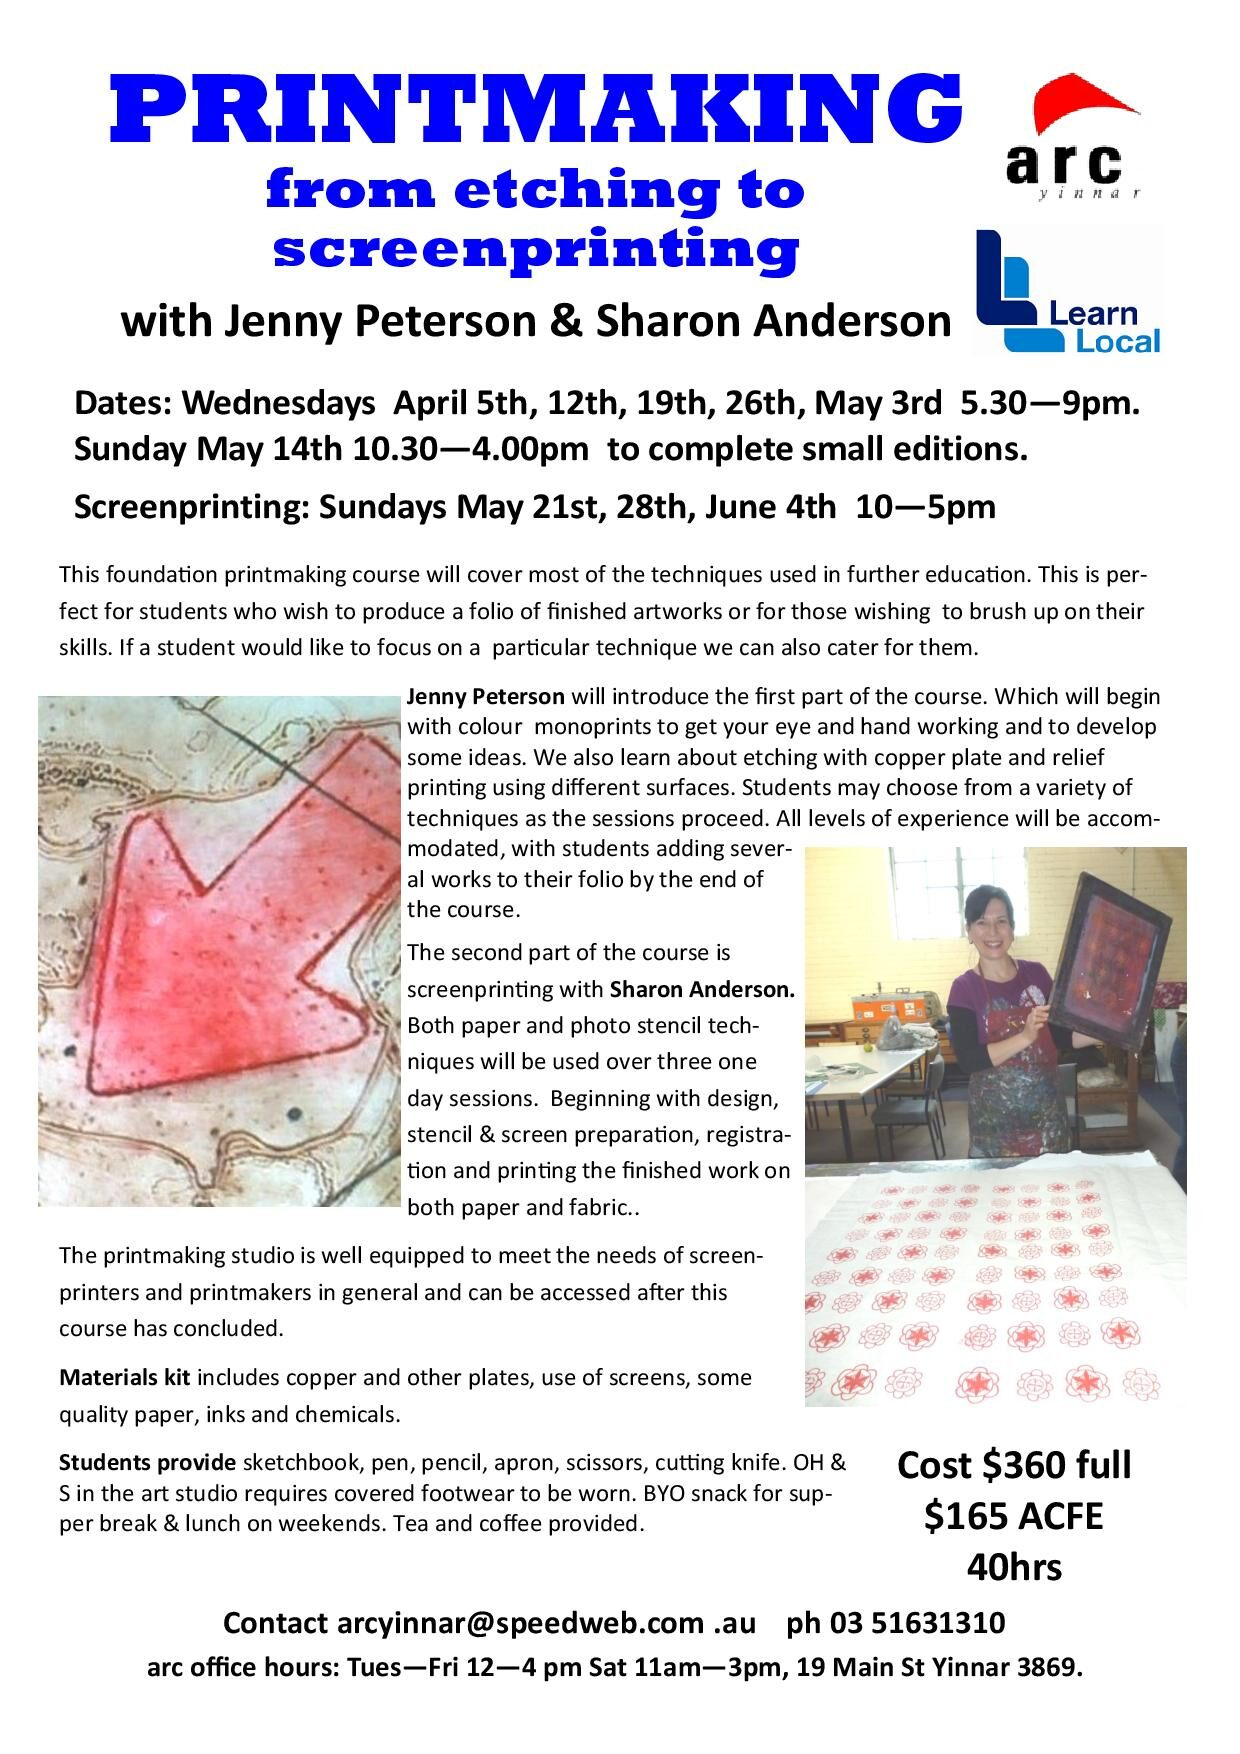 PRINTMAKING  from etching to   screenprinting  with Jenny Peterson & Sharon Anderson  Dates: Wednesdays April 5th, 12th, 19th, 26th, May 3rd 5.30—9pm.   Sunday May 14th 10.30—4.00pm to complete small editions.  Screenprinting: Sundays May 21st, 28th, June 4th 10—5pm